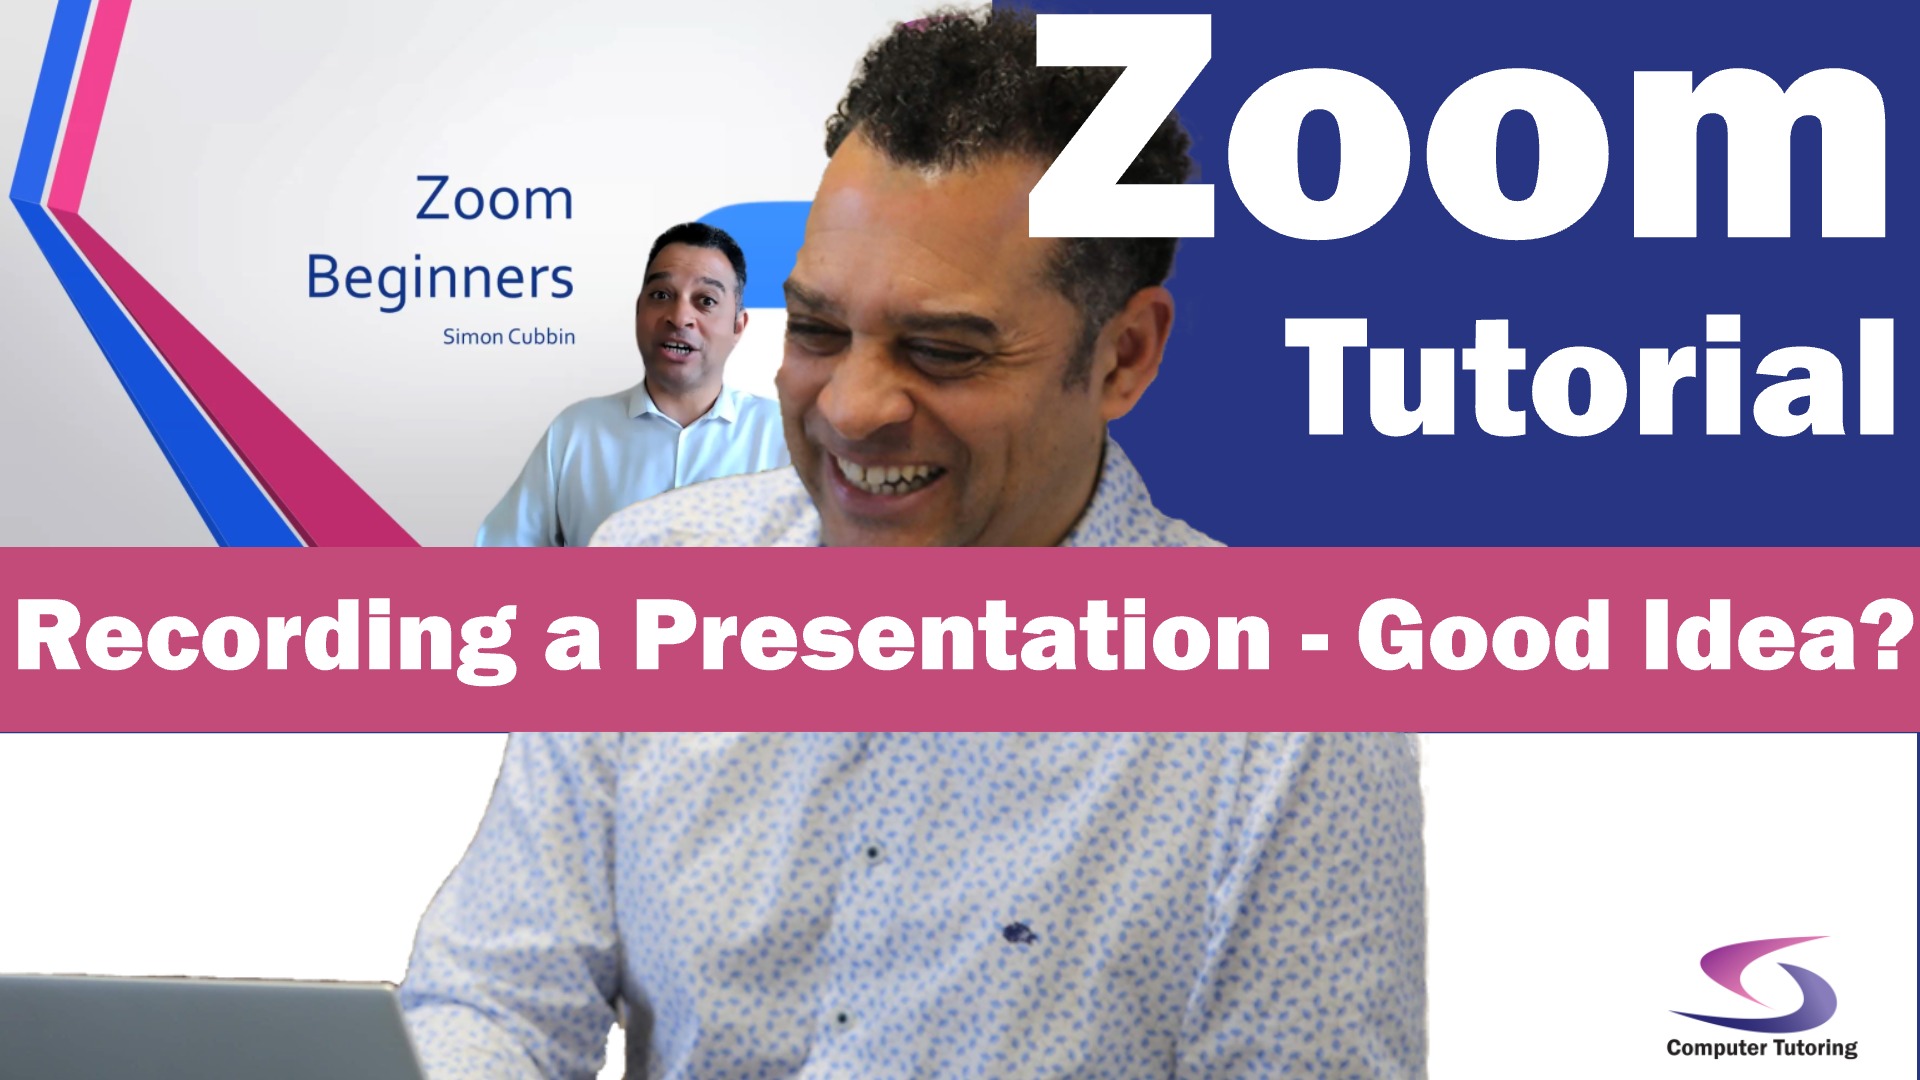 How to record a presentation on Zoom?